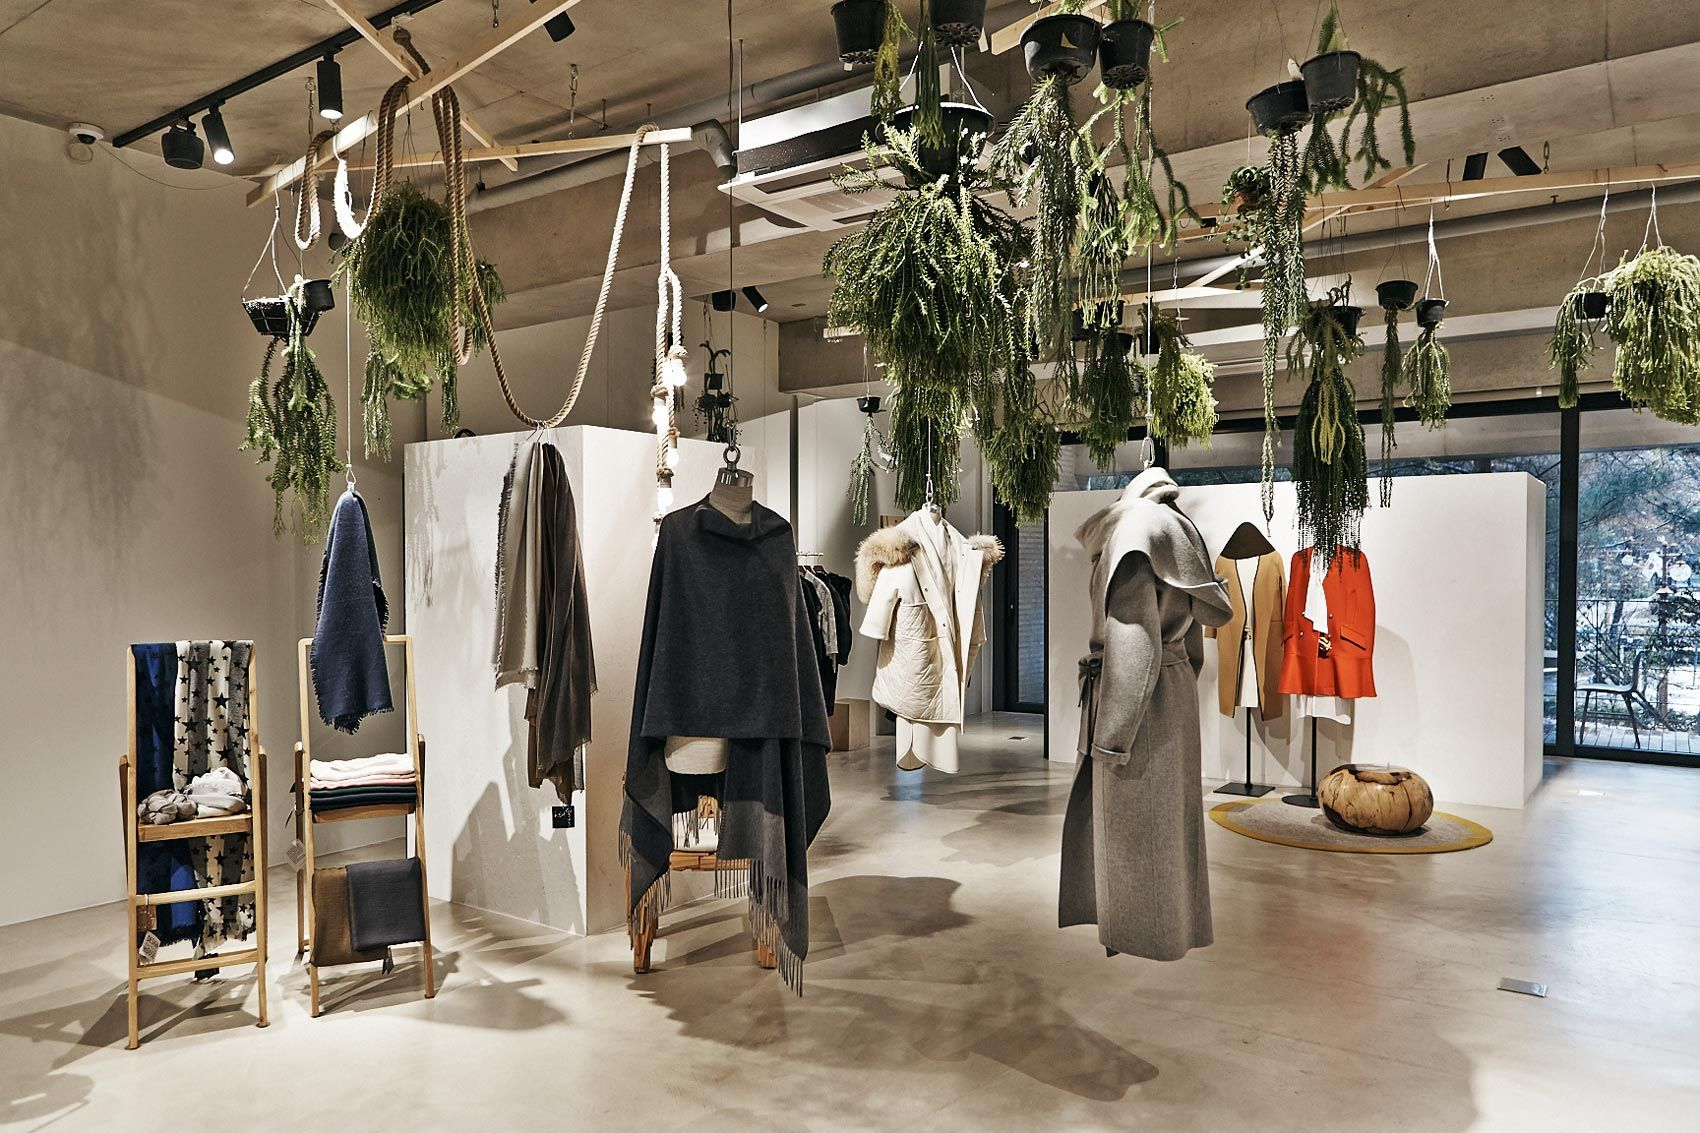 Queen Mama Market Trendiest Concept Store In Seoul Retail